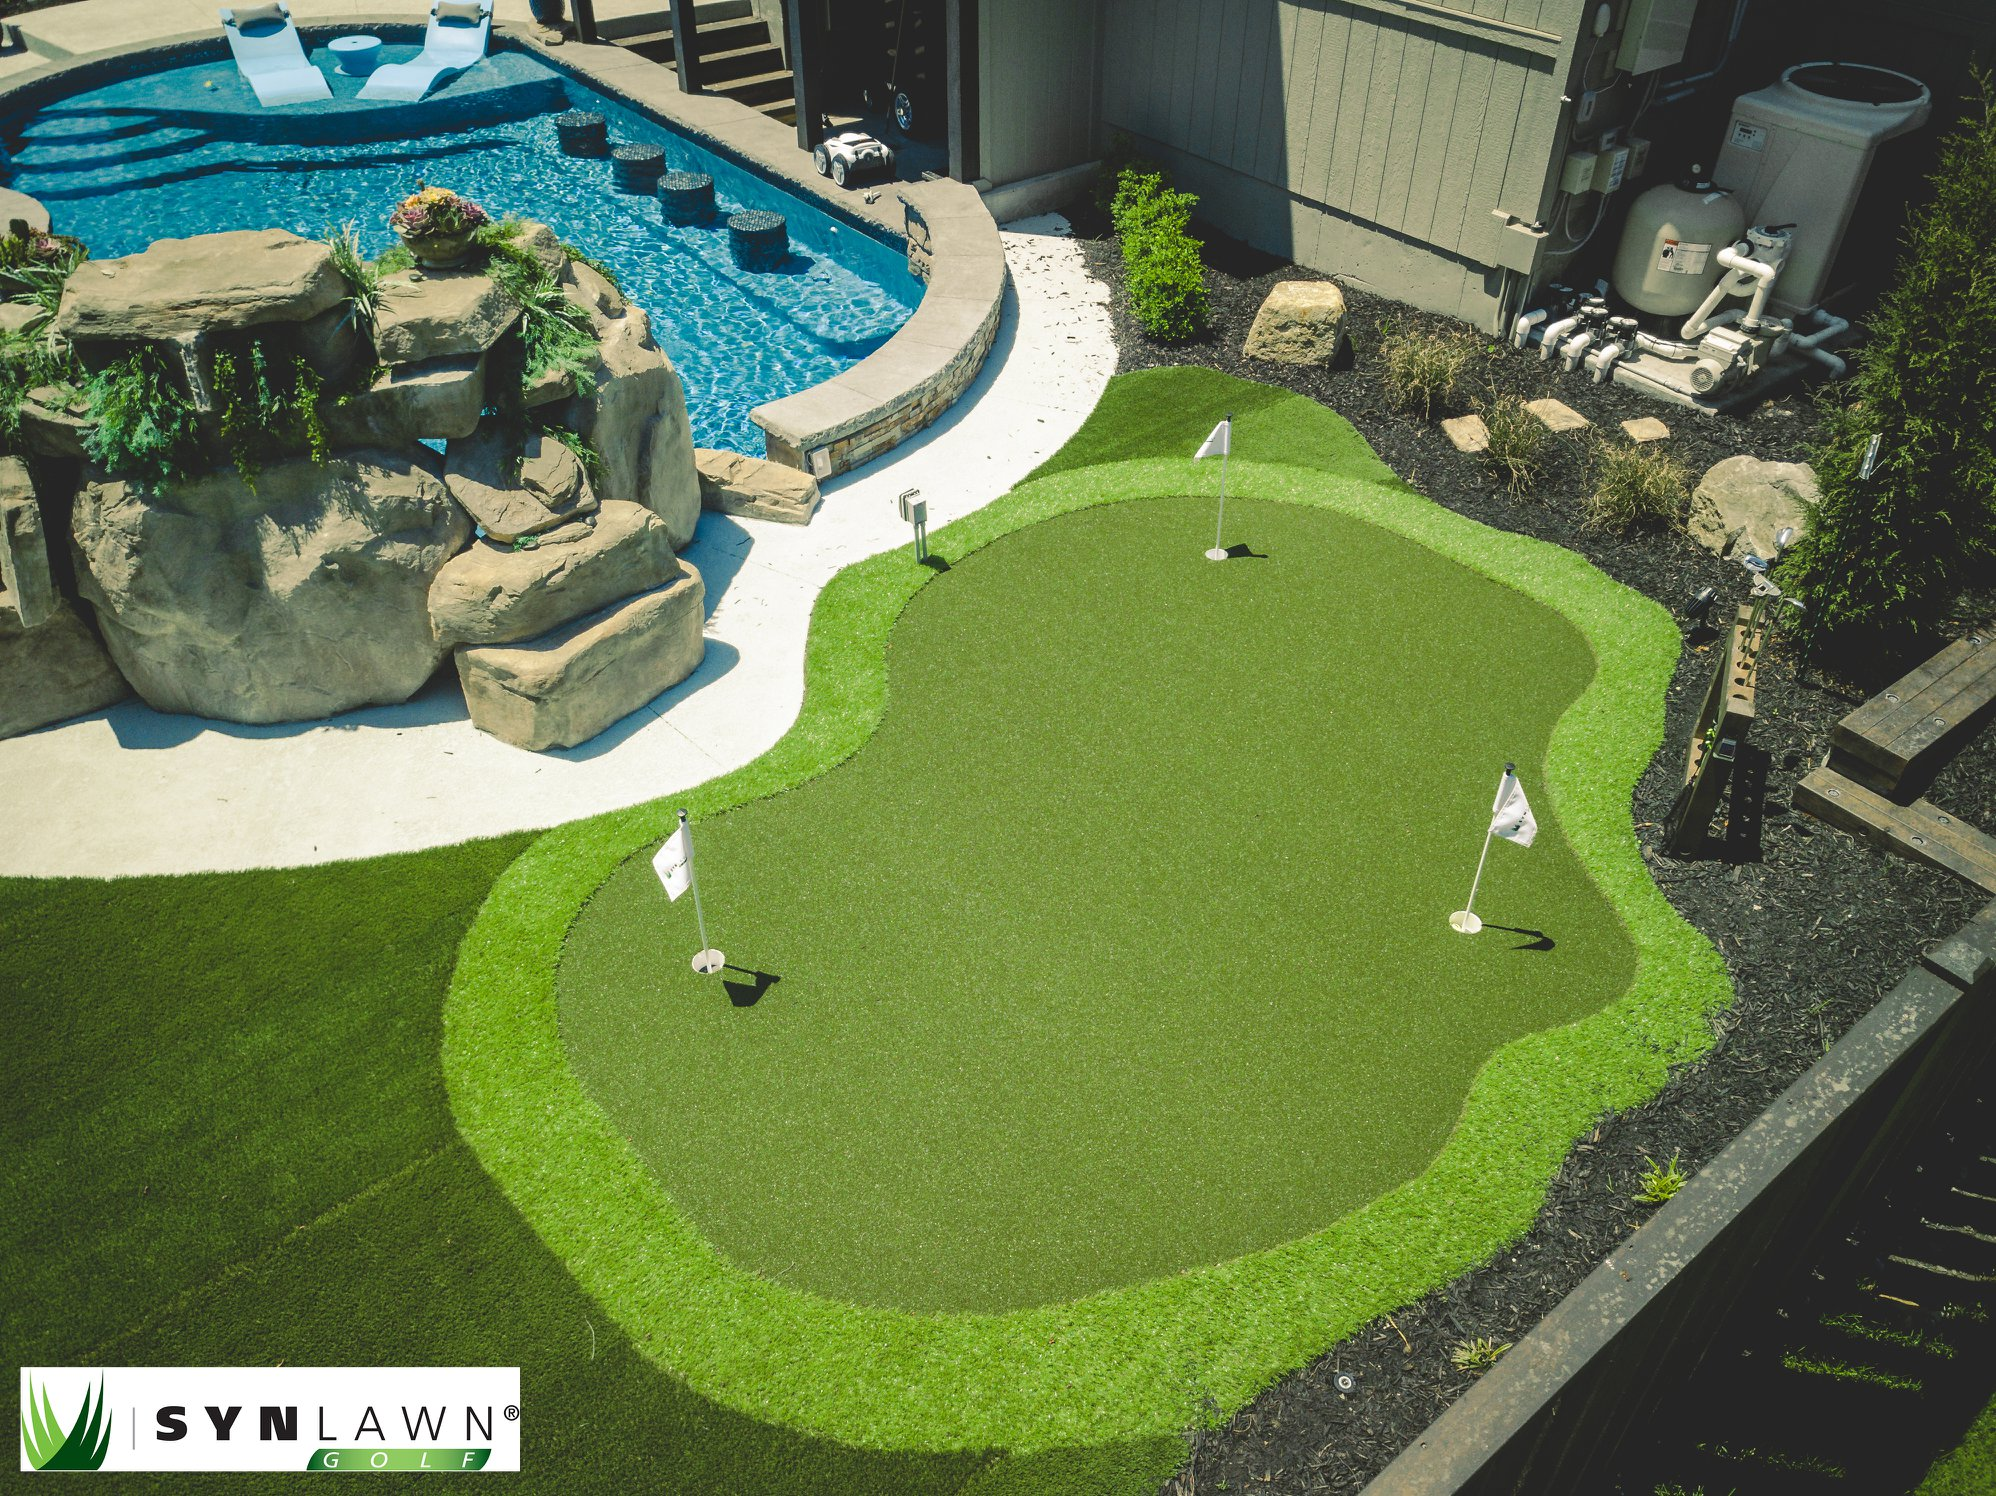 Kansas City backyard with an artificial grass putting green and pool.